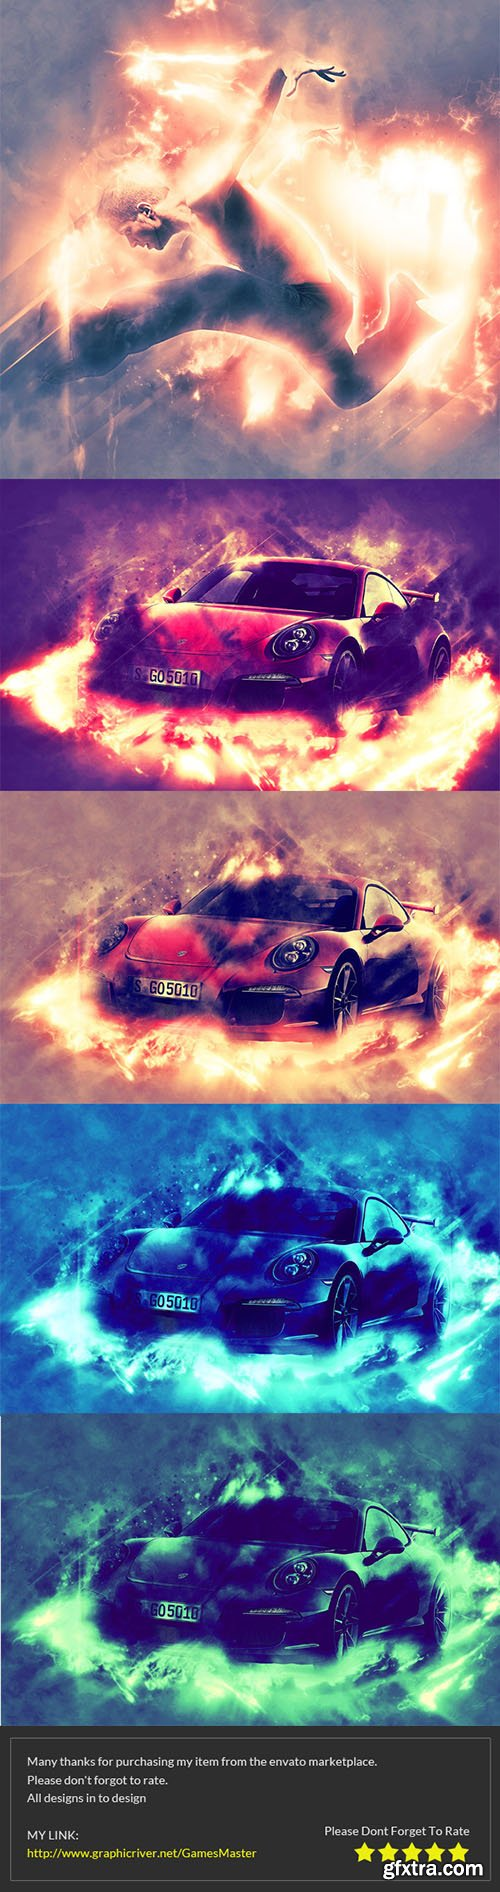 GraphicRiver Stunning Photoshop Action 10618846